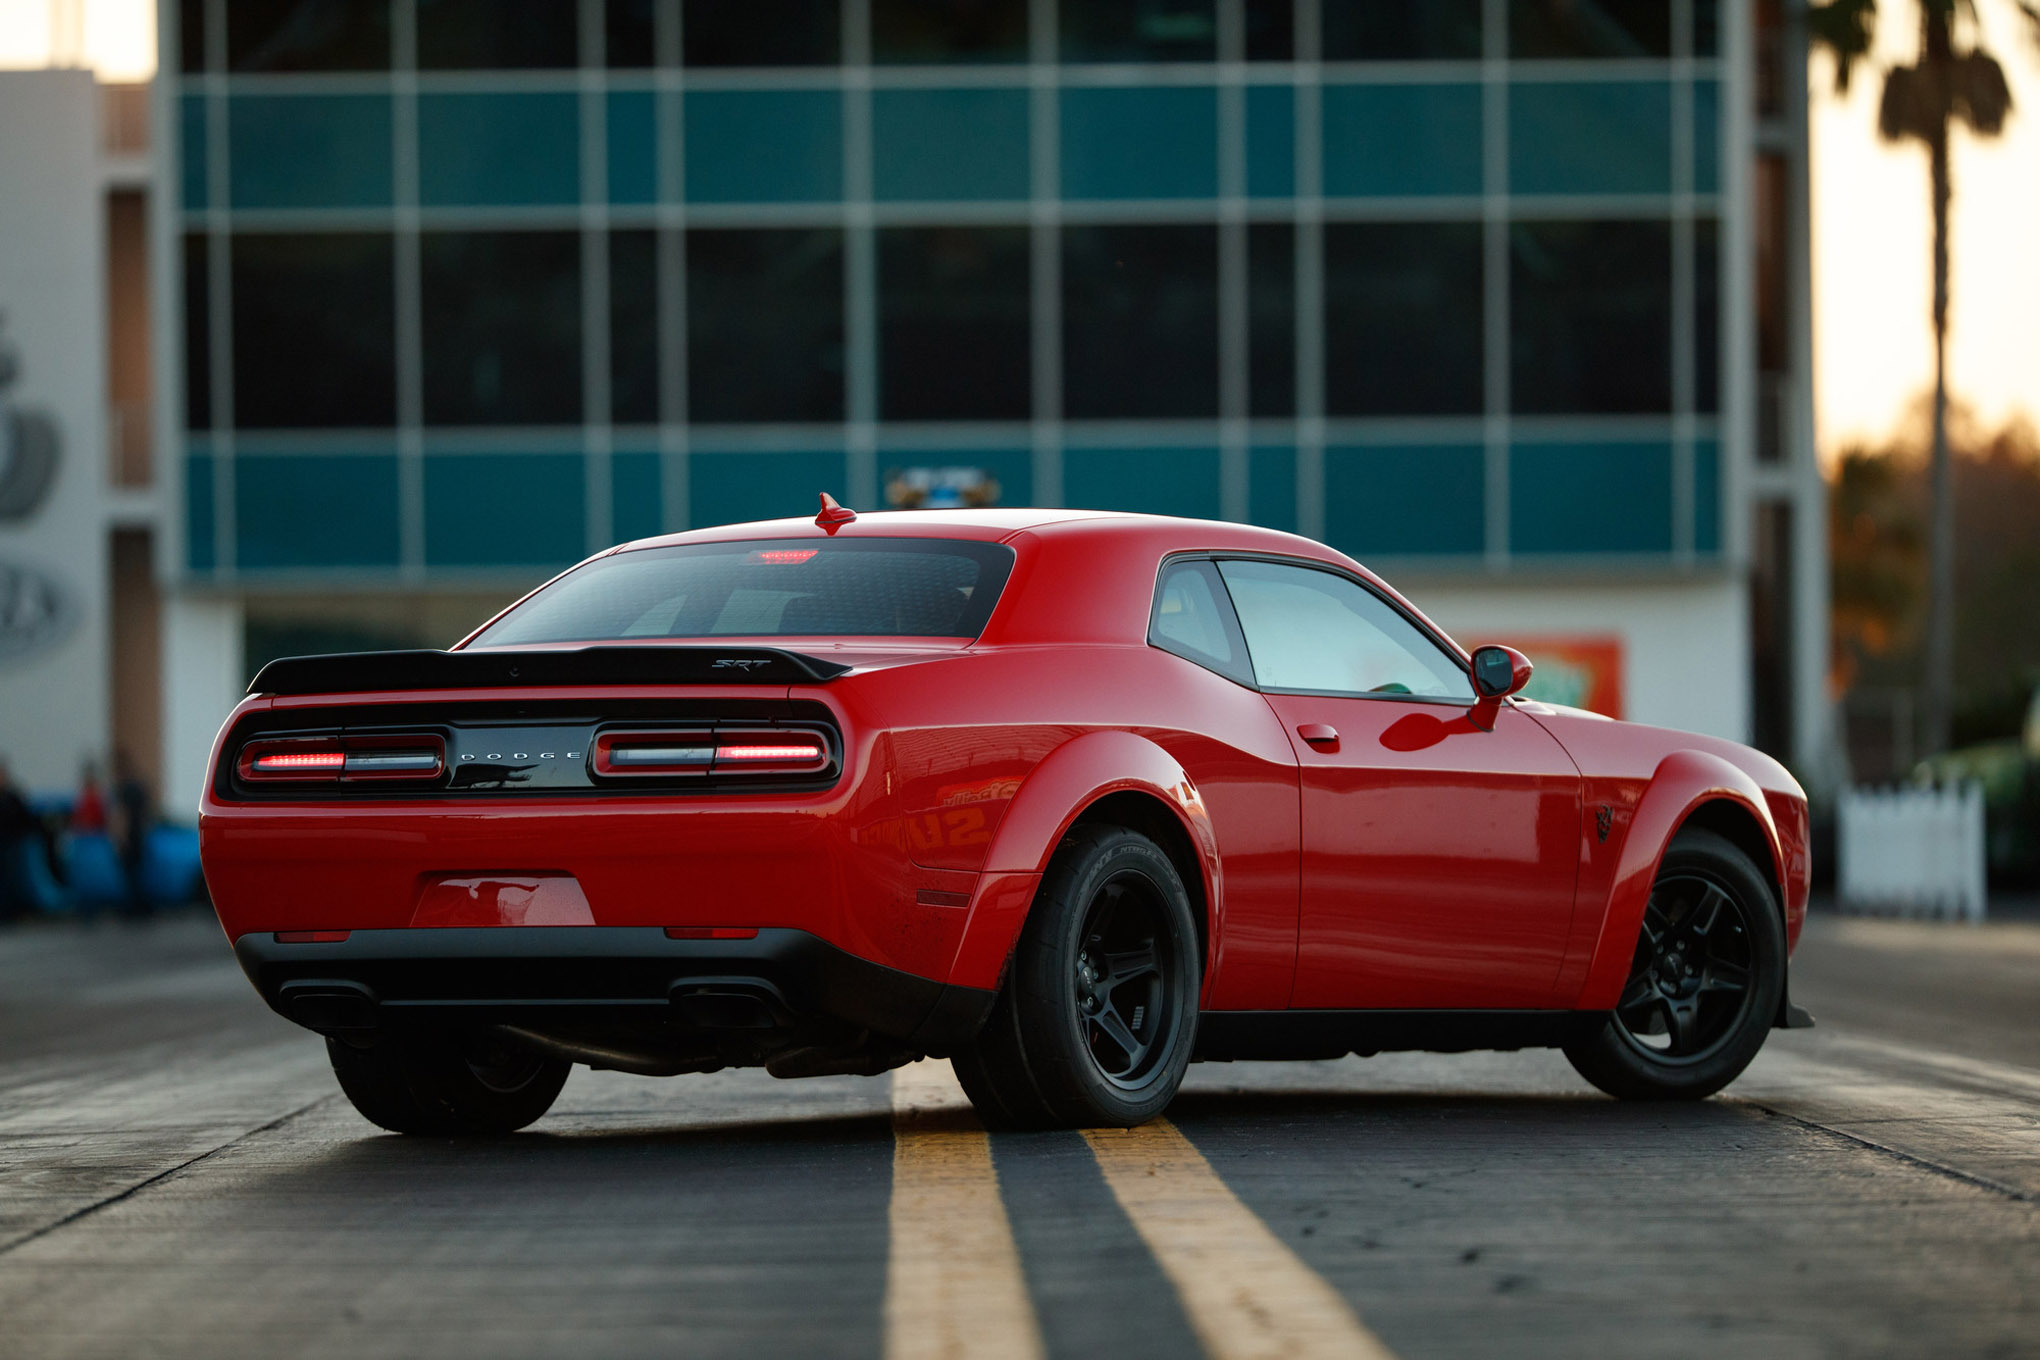 152-2018-dodge-demon.jpg